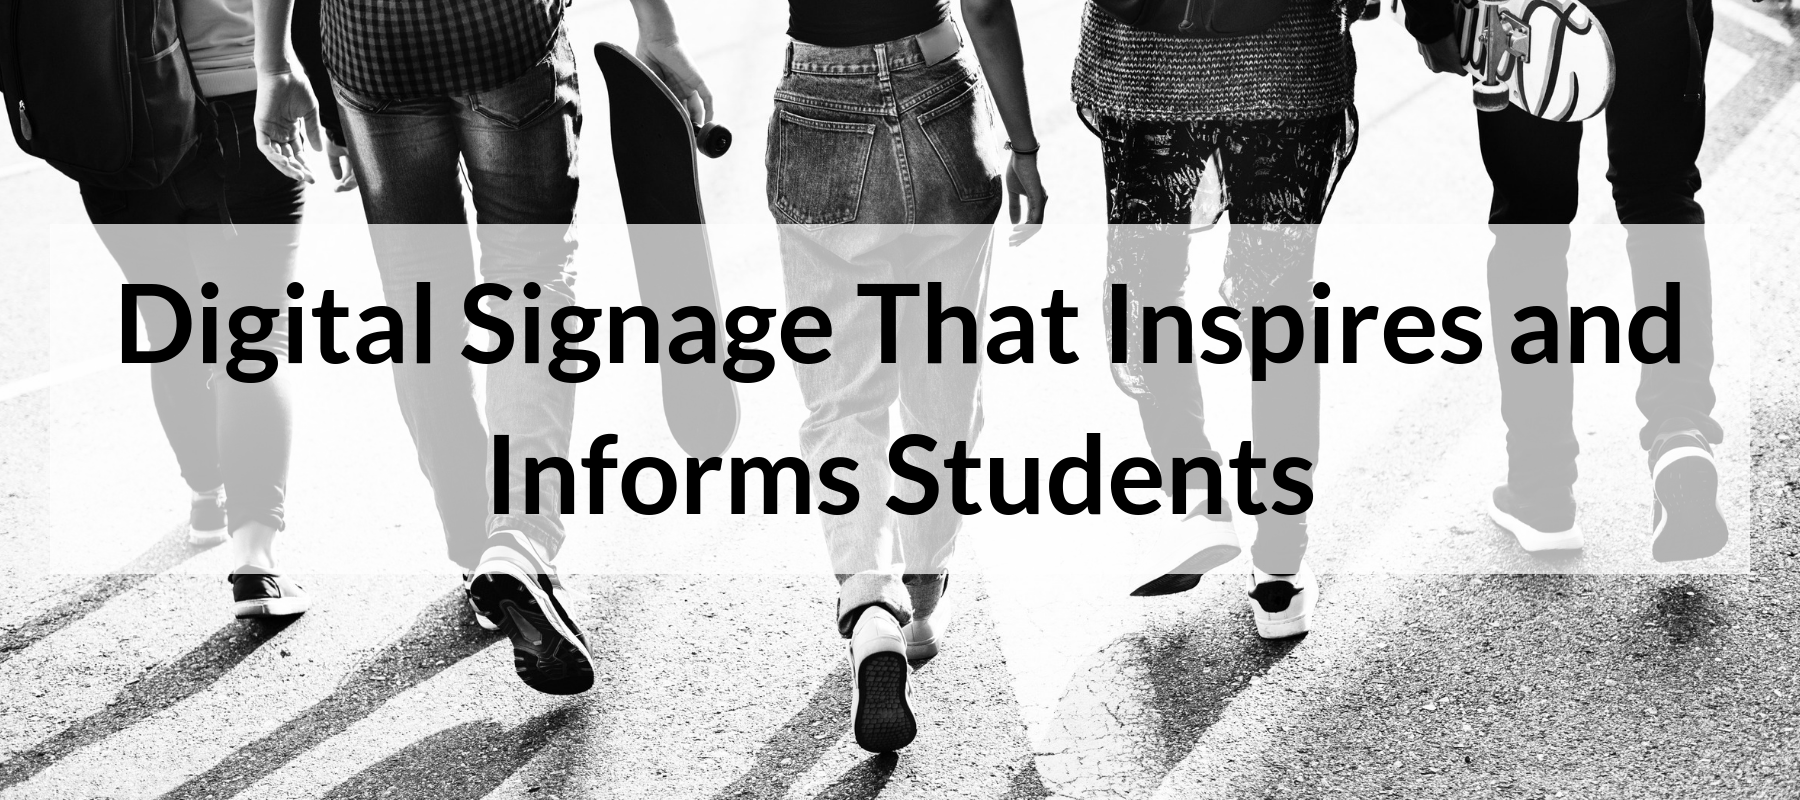 Digital Signage That Inspires and Informs Students